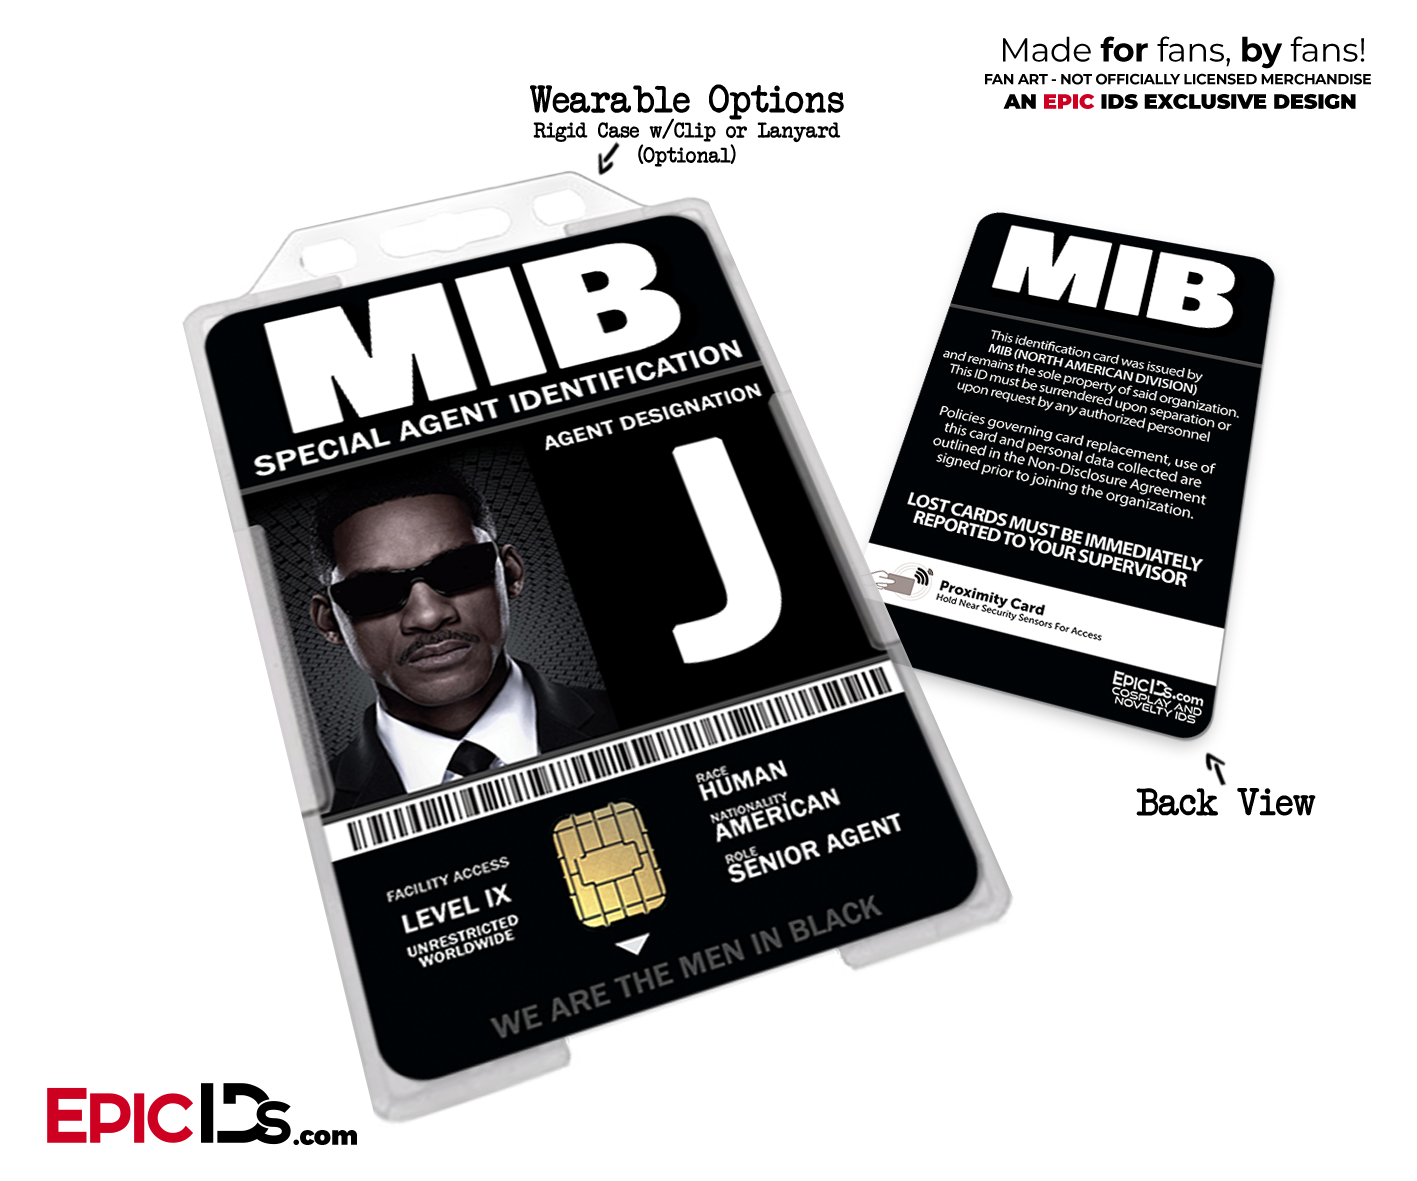 Special Agent Mib Men In Black Cosplay Name Badge Movie Characters